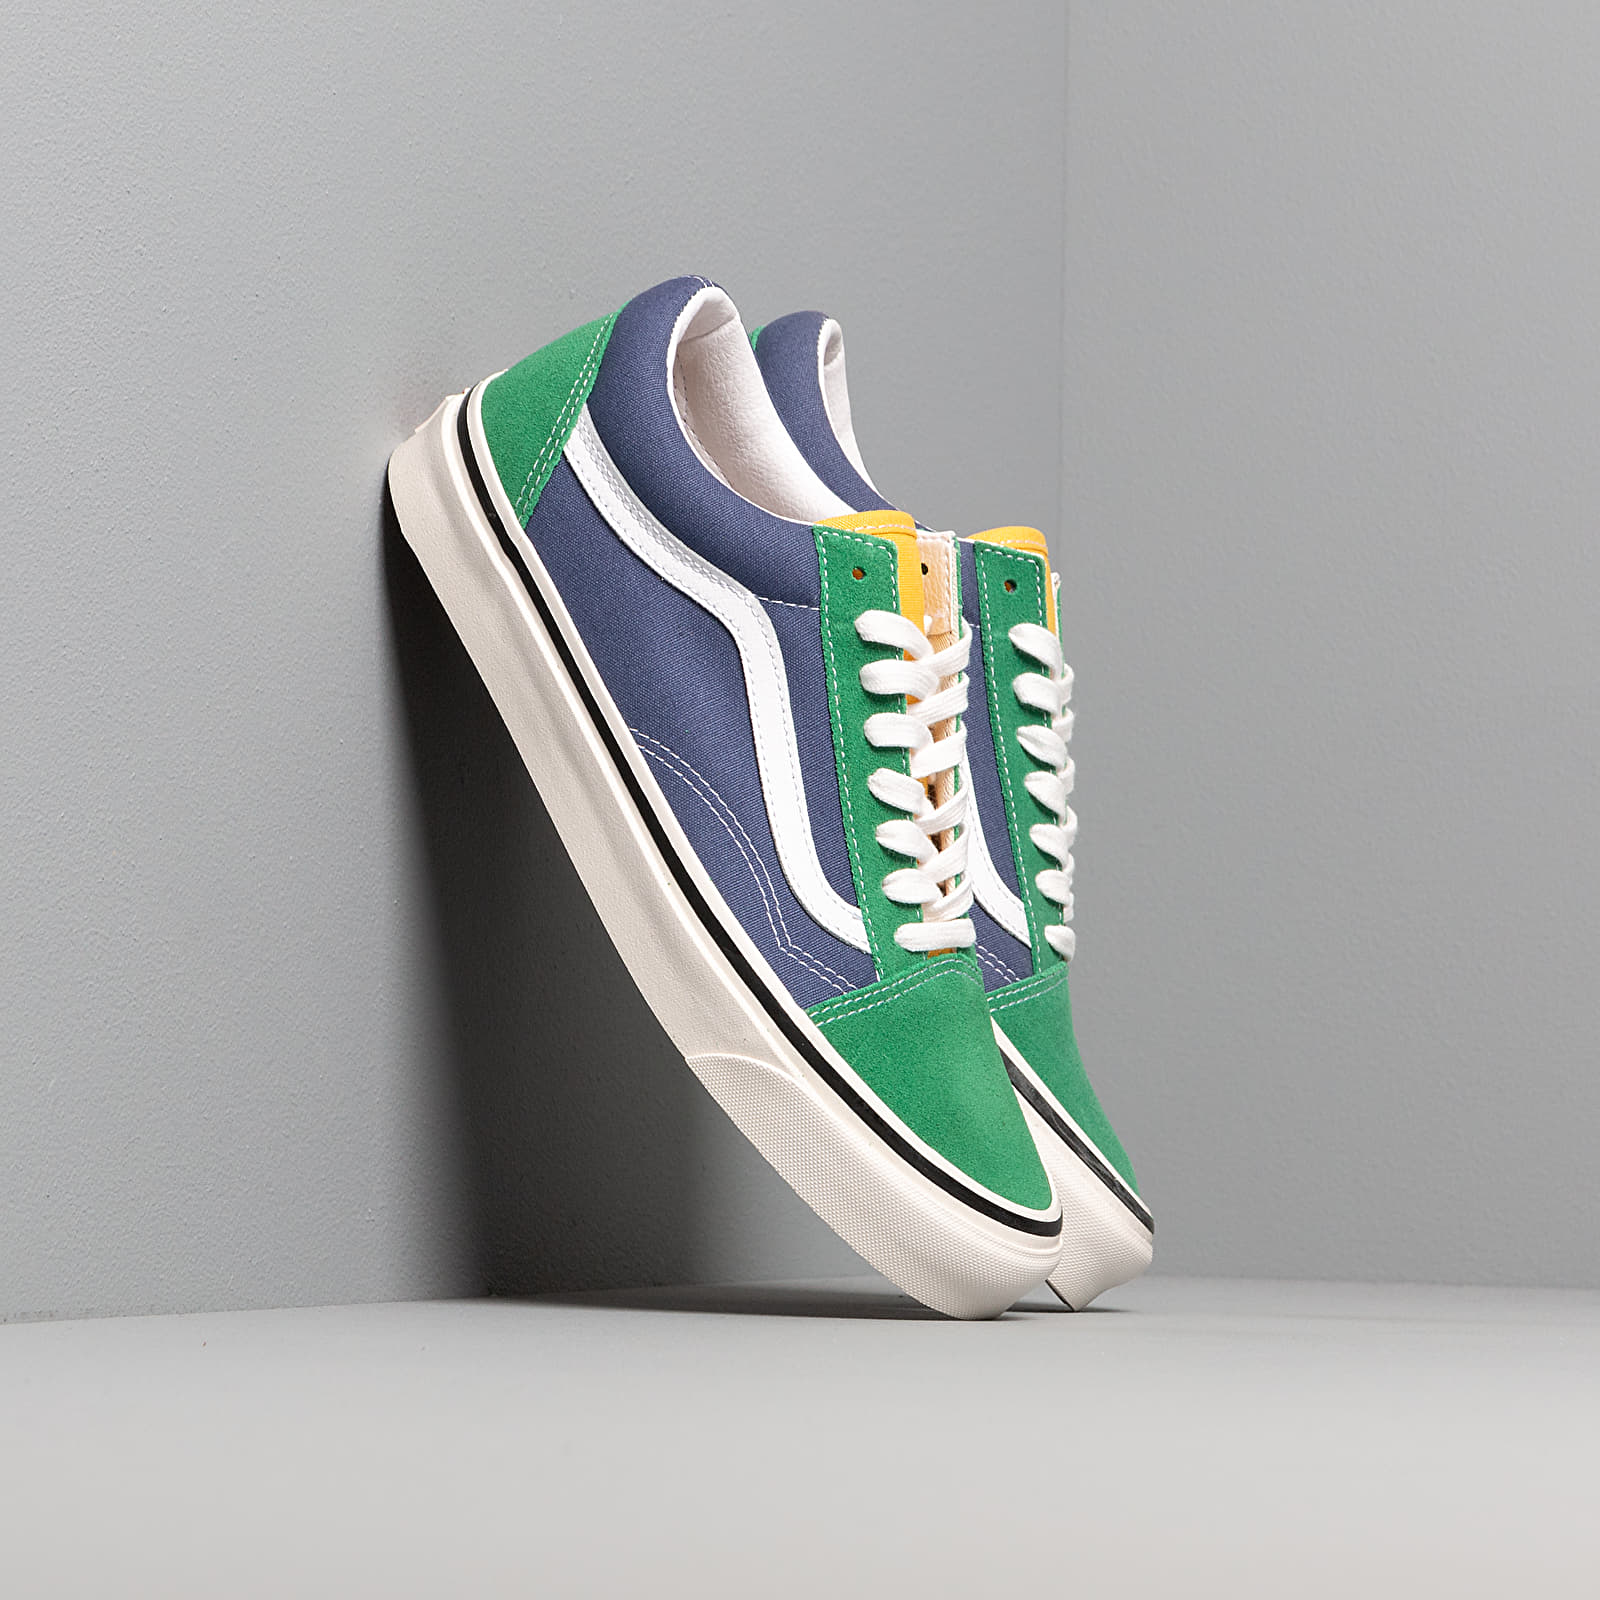 Buty męskie Vans Old Skool 36 Dx (Anaheim Factory) Green/ Denim